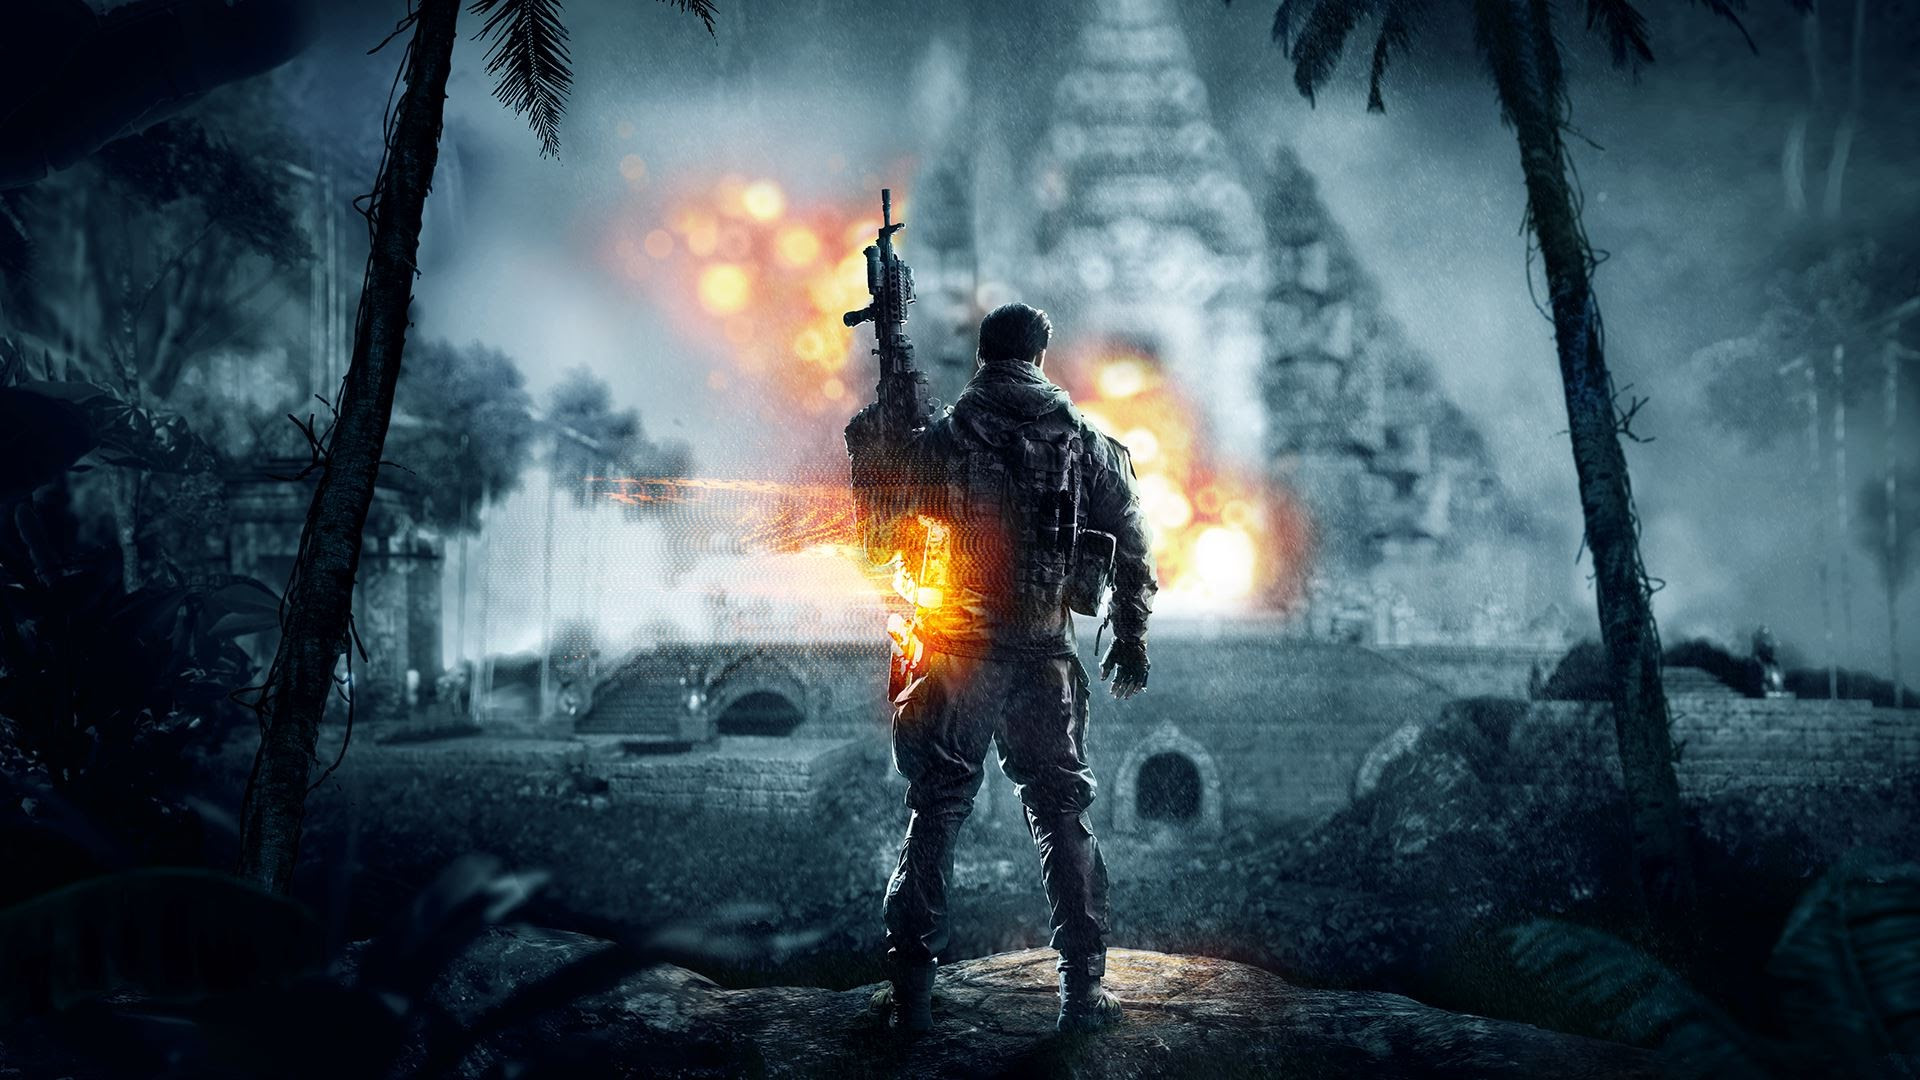 Battlefield 4 Game Mission Hd Games 4k Wallpapers Images